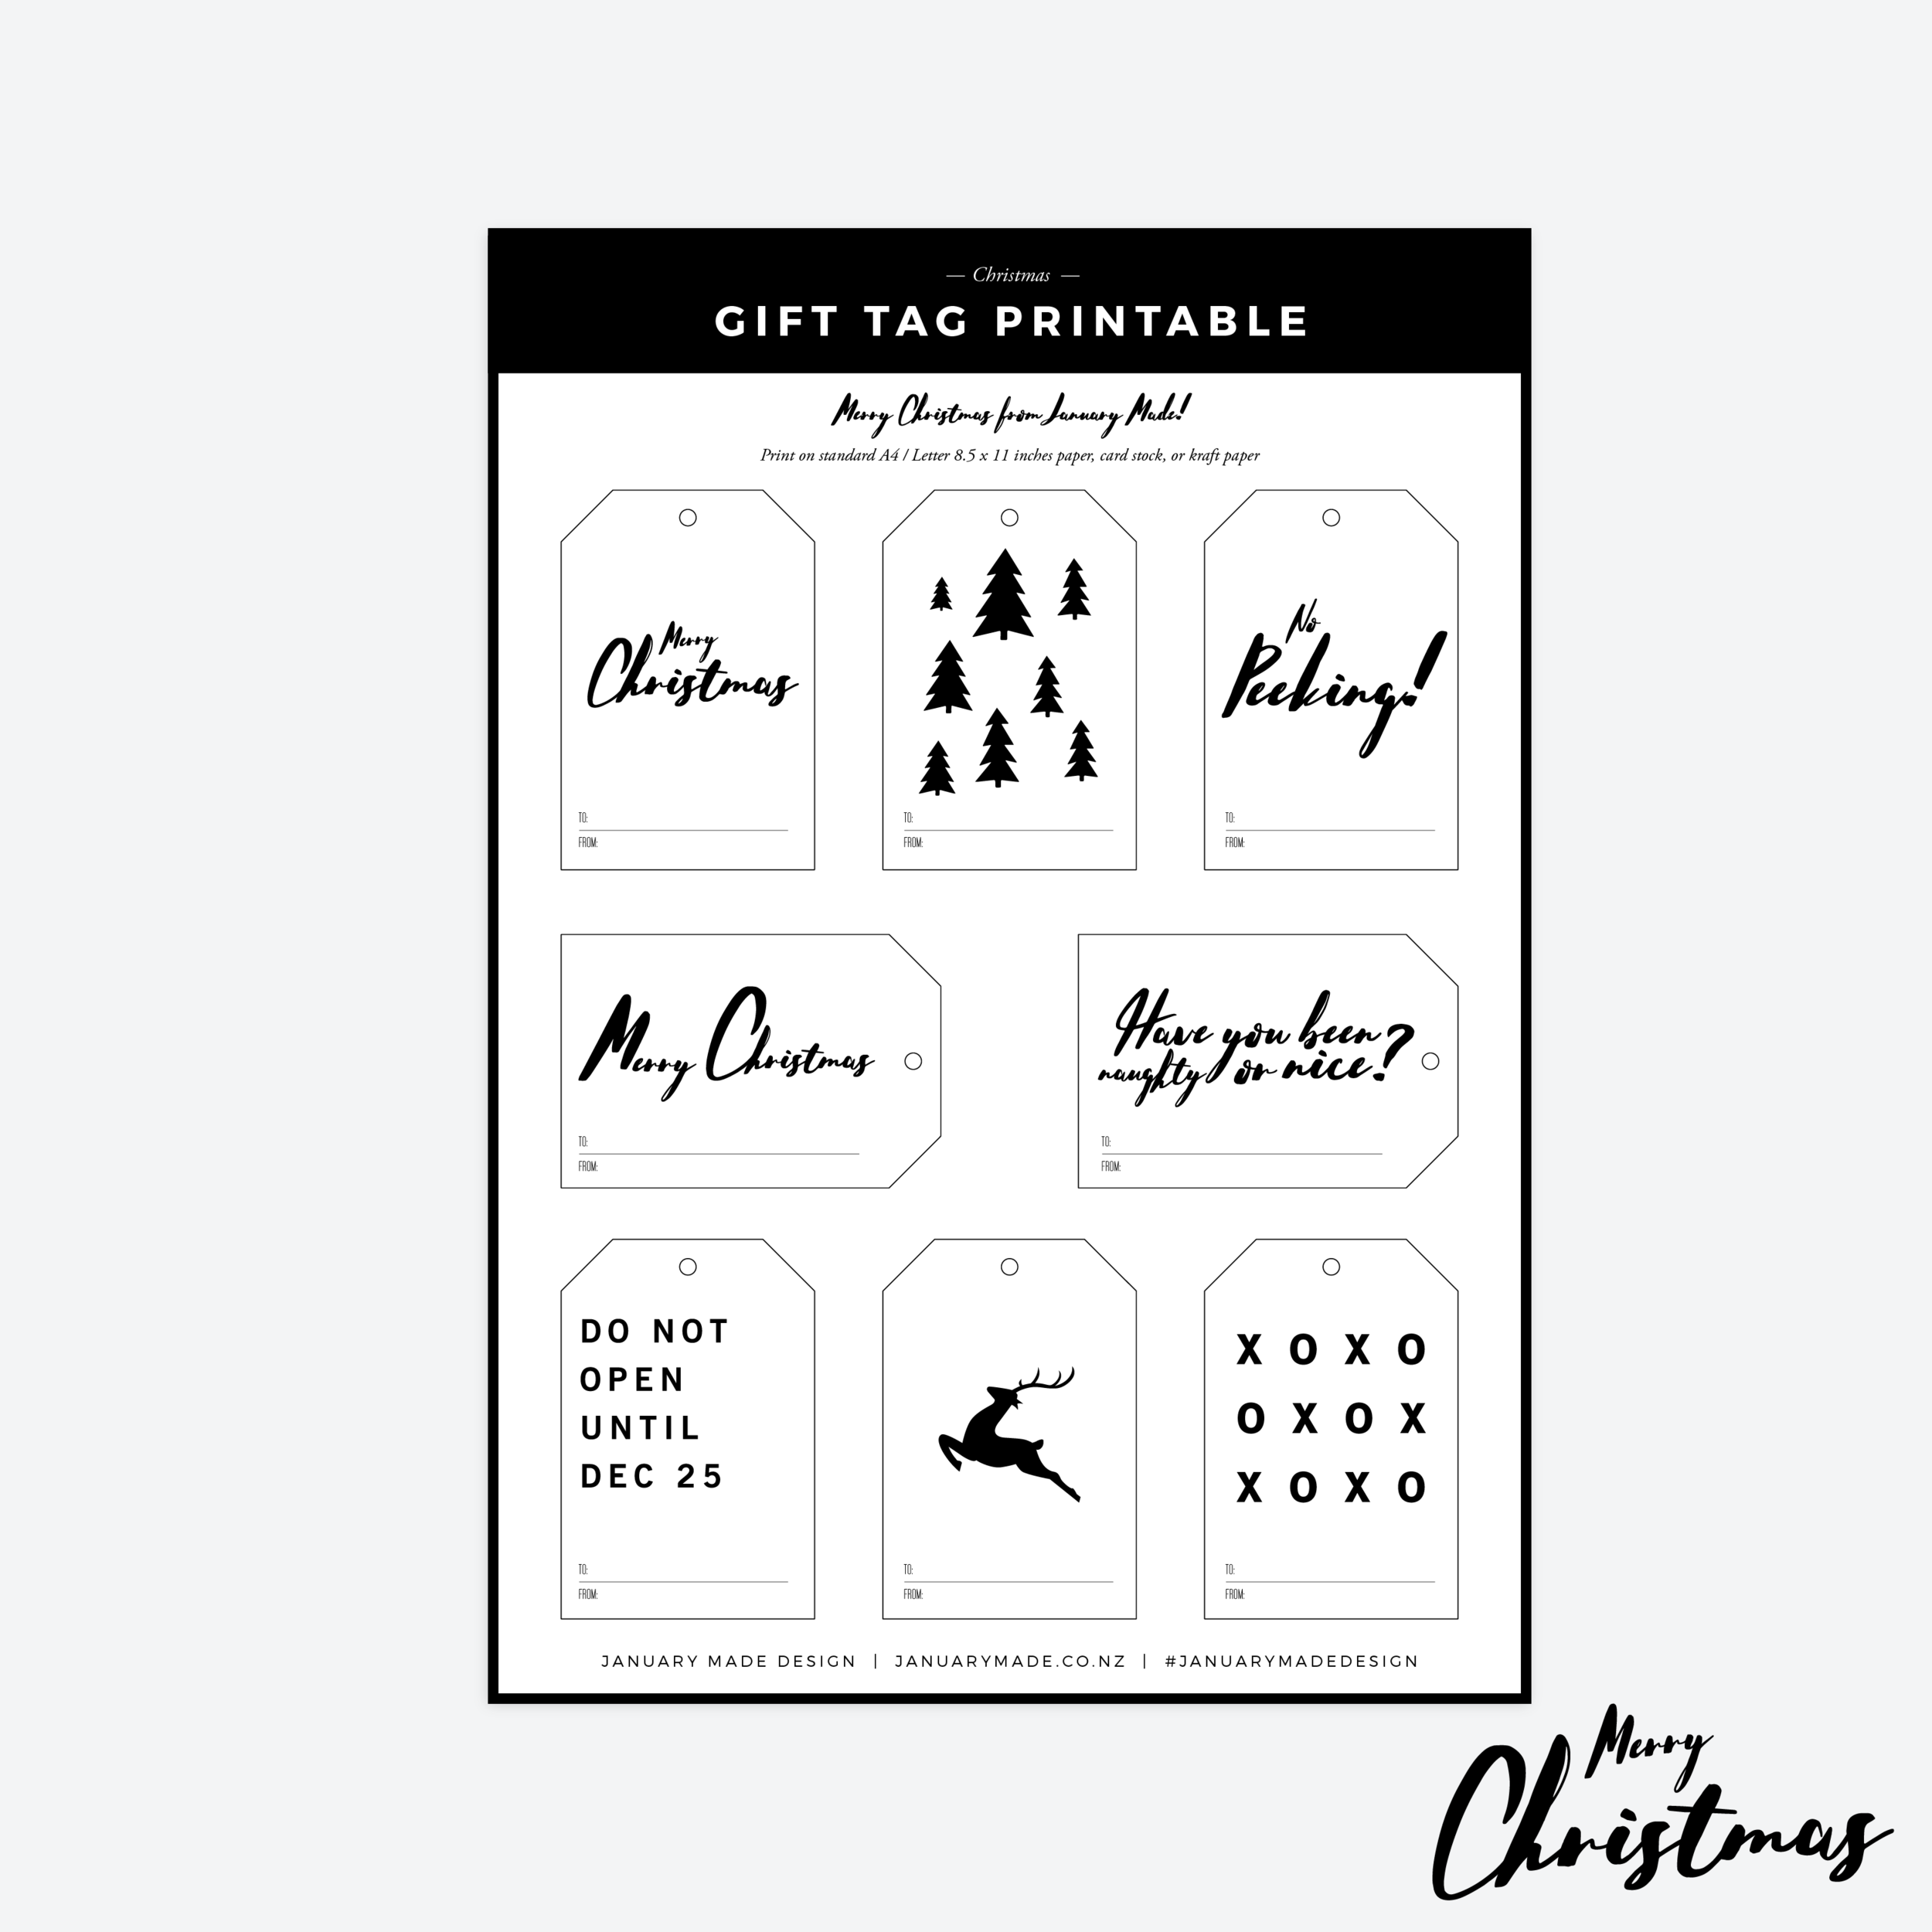 graphic about Printable Christmas Tags Black and White titled Cost-free Present Tag Printable for a Minimalist Xmas January